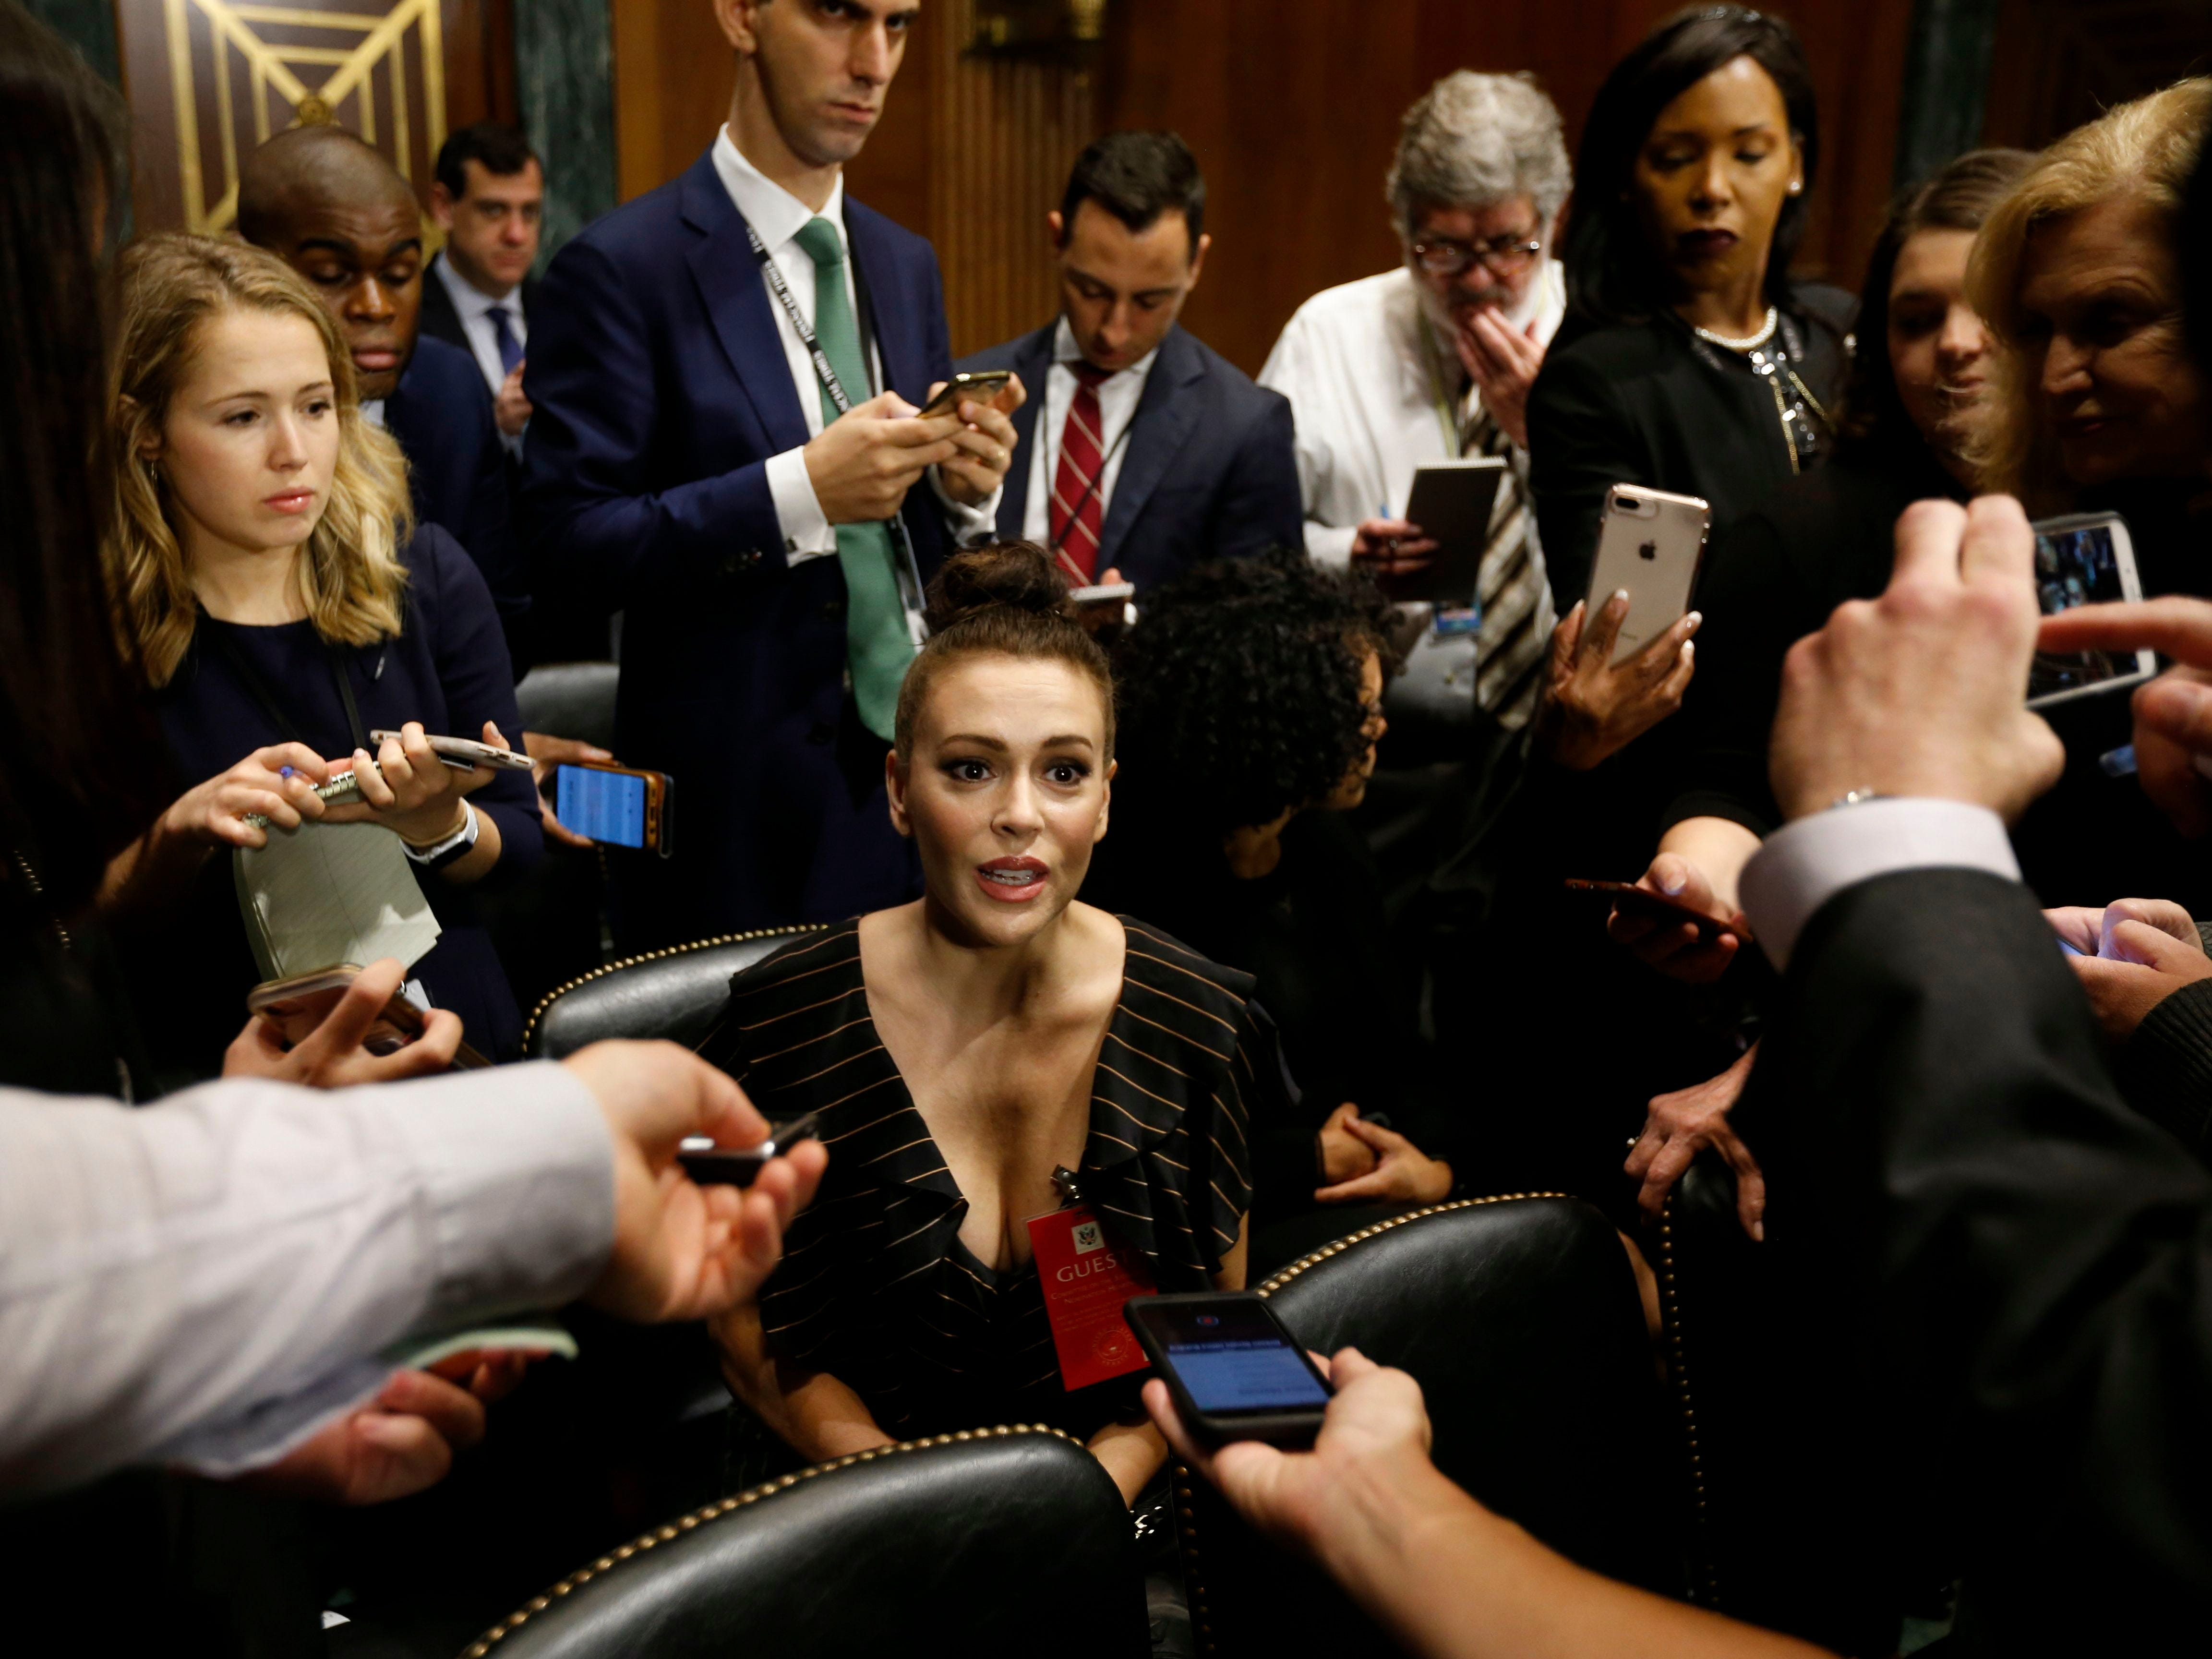 Actress Alyssa Milano talks to media before the Senate Judiciary Committee hearing on the nomination of Brett Kavanaugh to be an associate justice of the Supreme Court of the US in Washington, DC, on September 27, 2018. - Washington was bracing Thursday for a charged hearing pitting Donald Trump's Supreme Court pick Brett Kavanaugh against his accuser Christine Blasey Ford, who is set to detail sexual assault allegations against the judge that could derail his already turbulent confirmation process. (Photo by MICHAEL REYNOLDS / POOL / AFP)MICHAEL REYNOLDS/AFP/Getty Images ORG XMIT: Christine ORIG FILE ID: AFP_19I3BJ